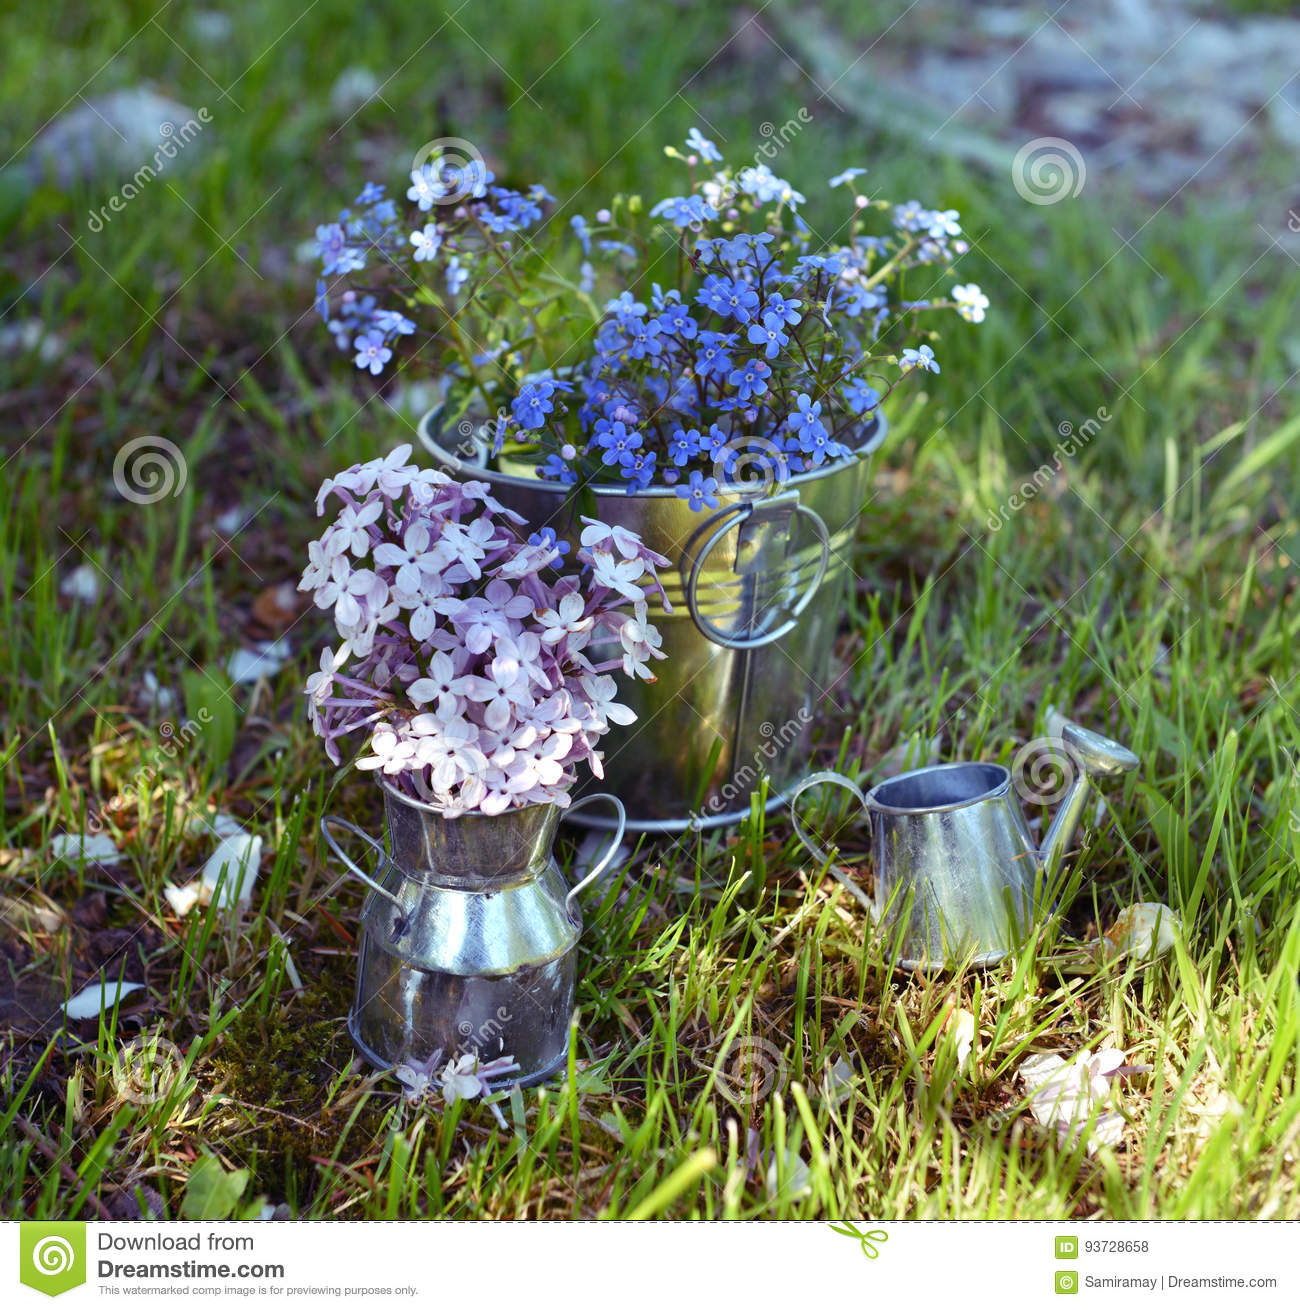 ca1e7352a7a Still Life With Wildflowers, Lilac Bouquet And Cute Watering Can In ...